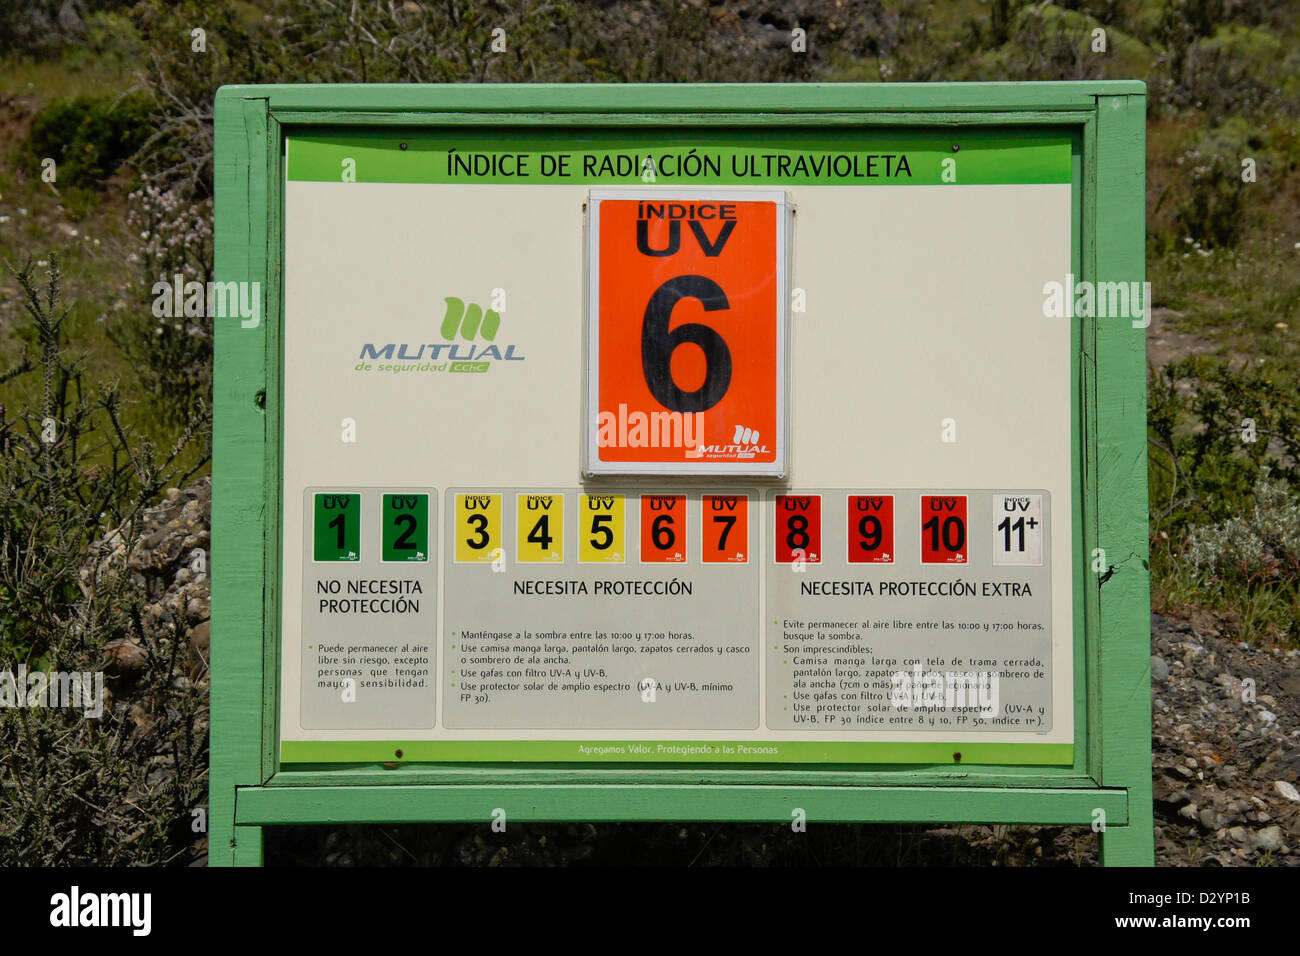 Warning sign showing UV radiation condition, Patagonia, Chile Stock Photo